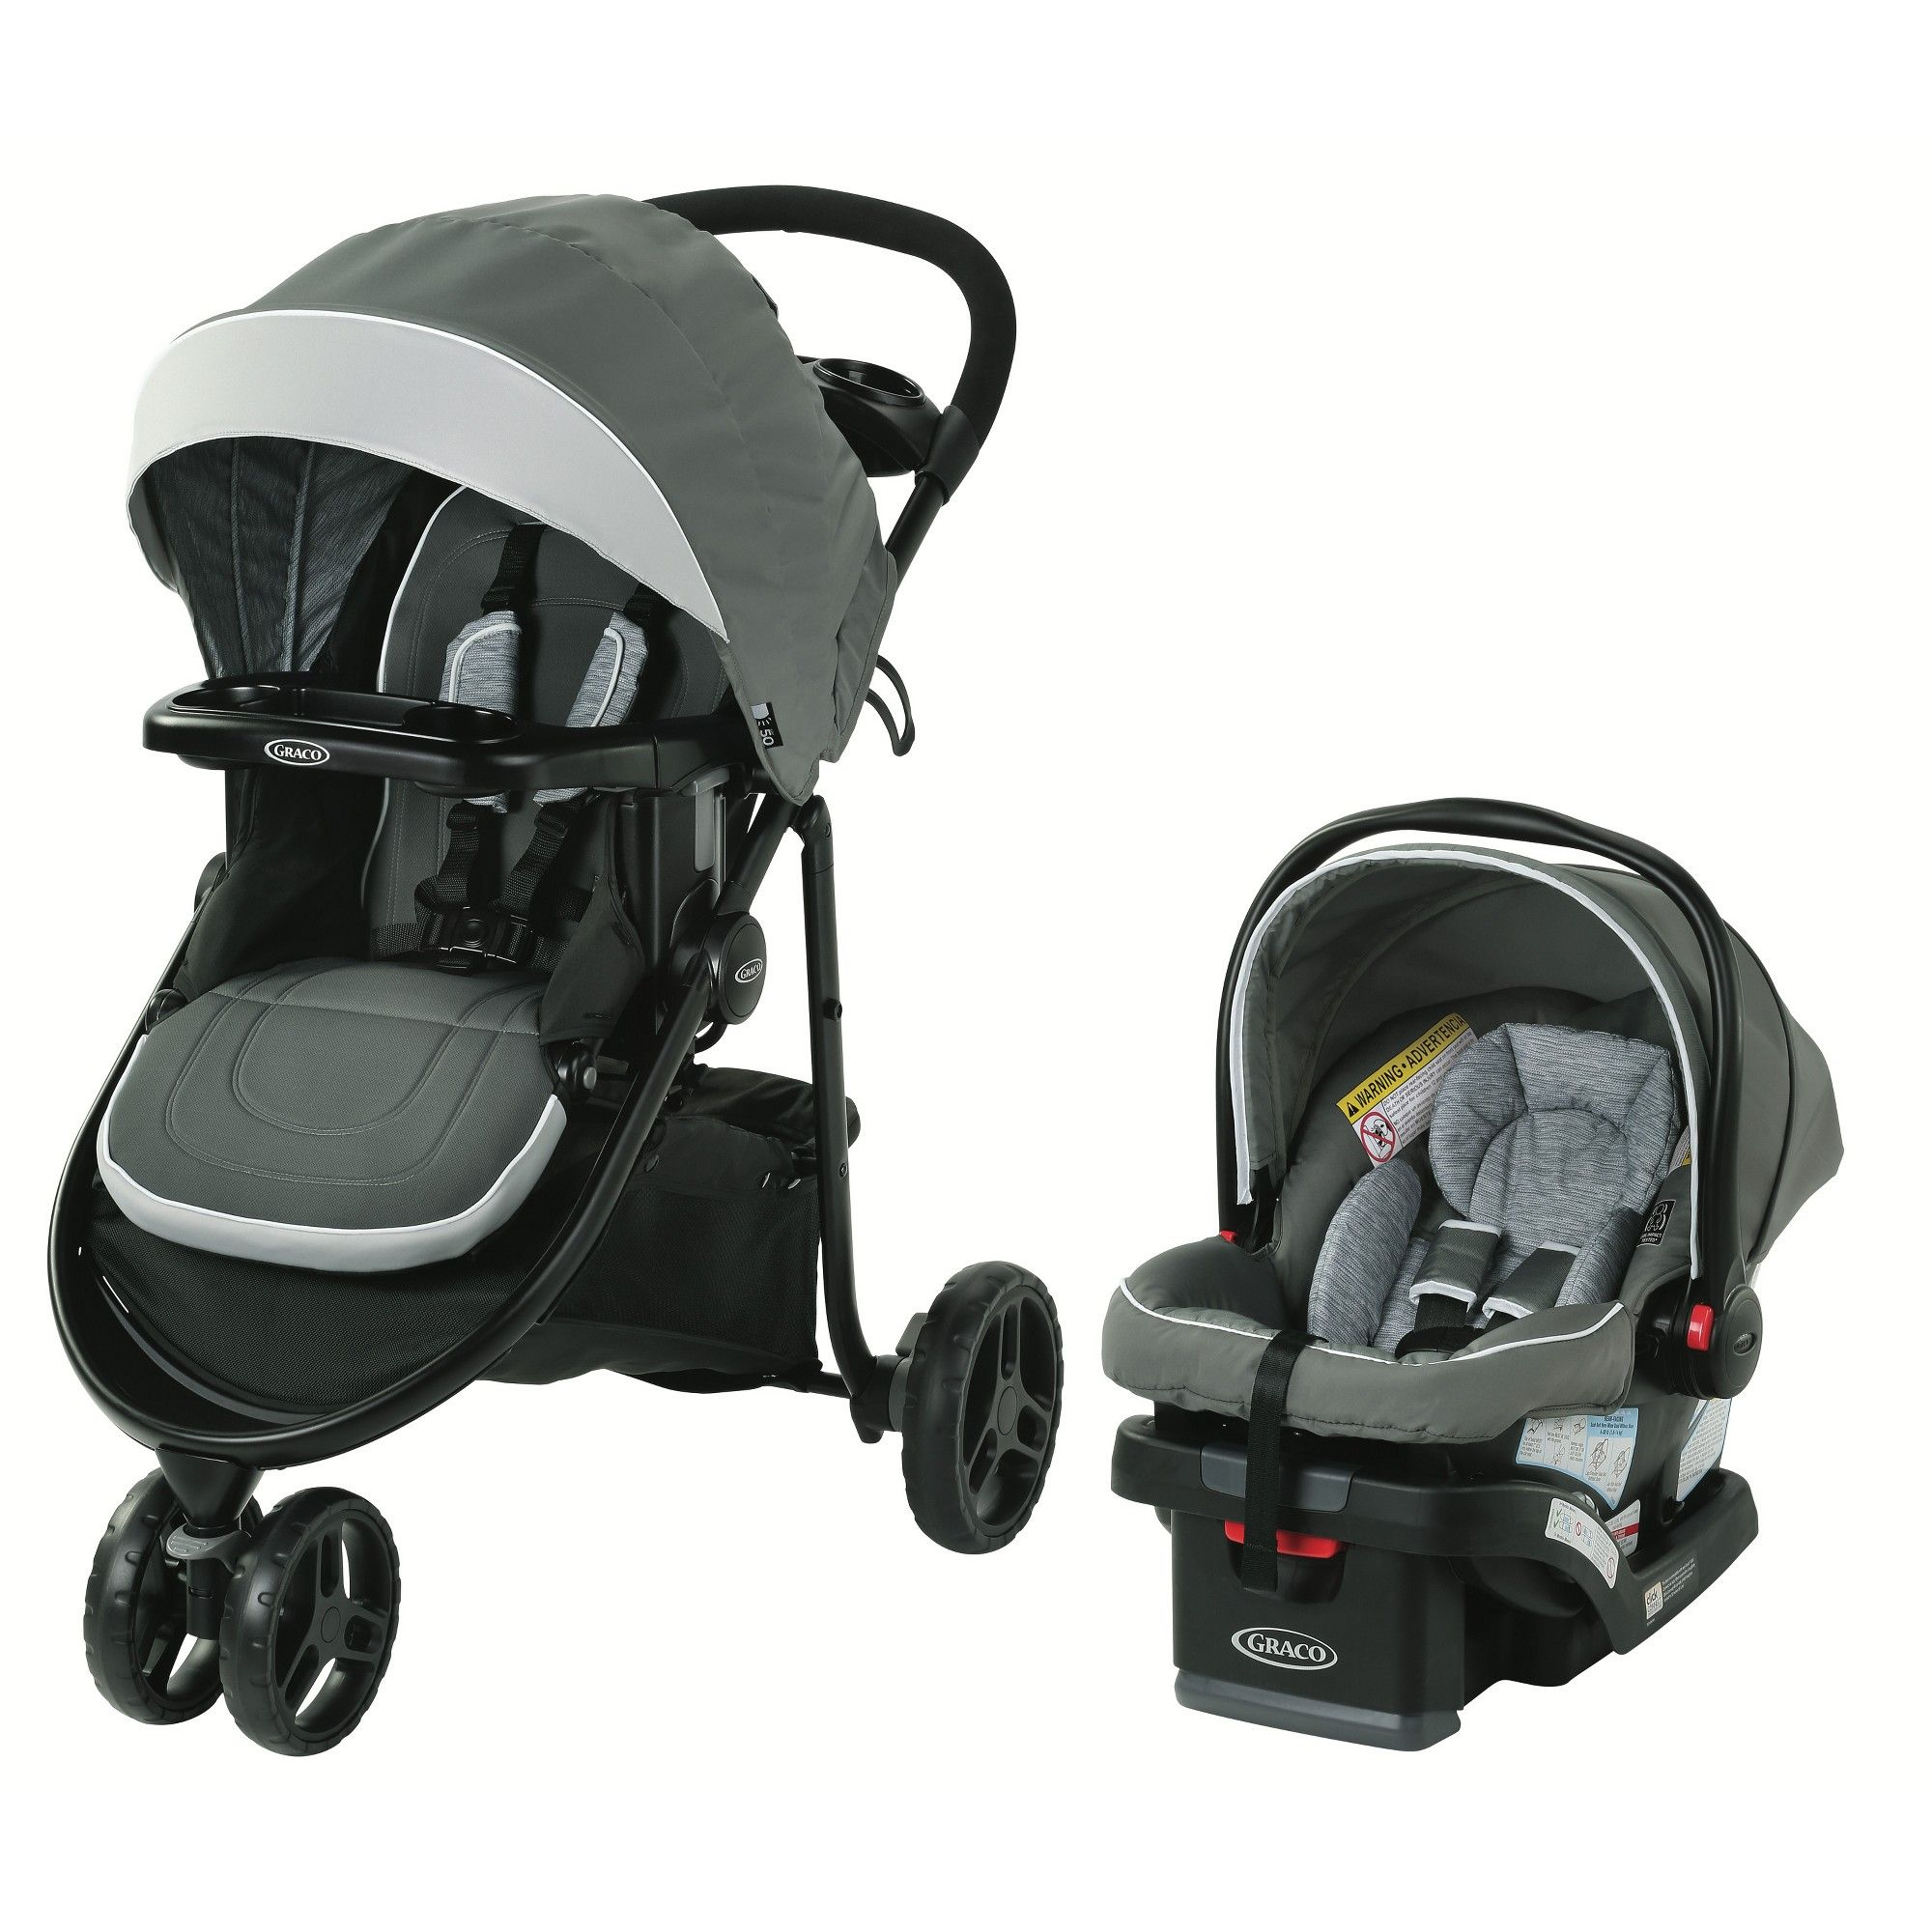 Graco Modes 3 Lite DLX Travel System Cooper Graco